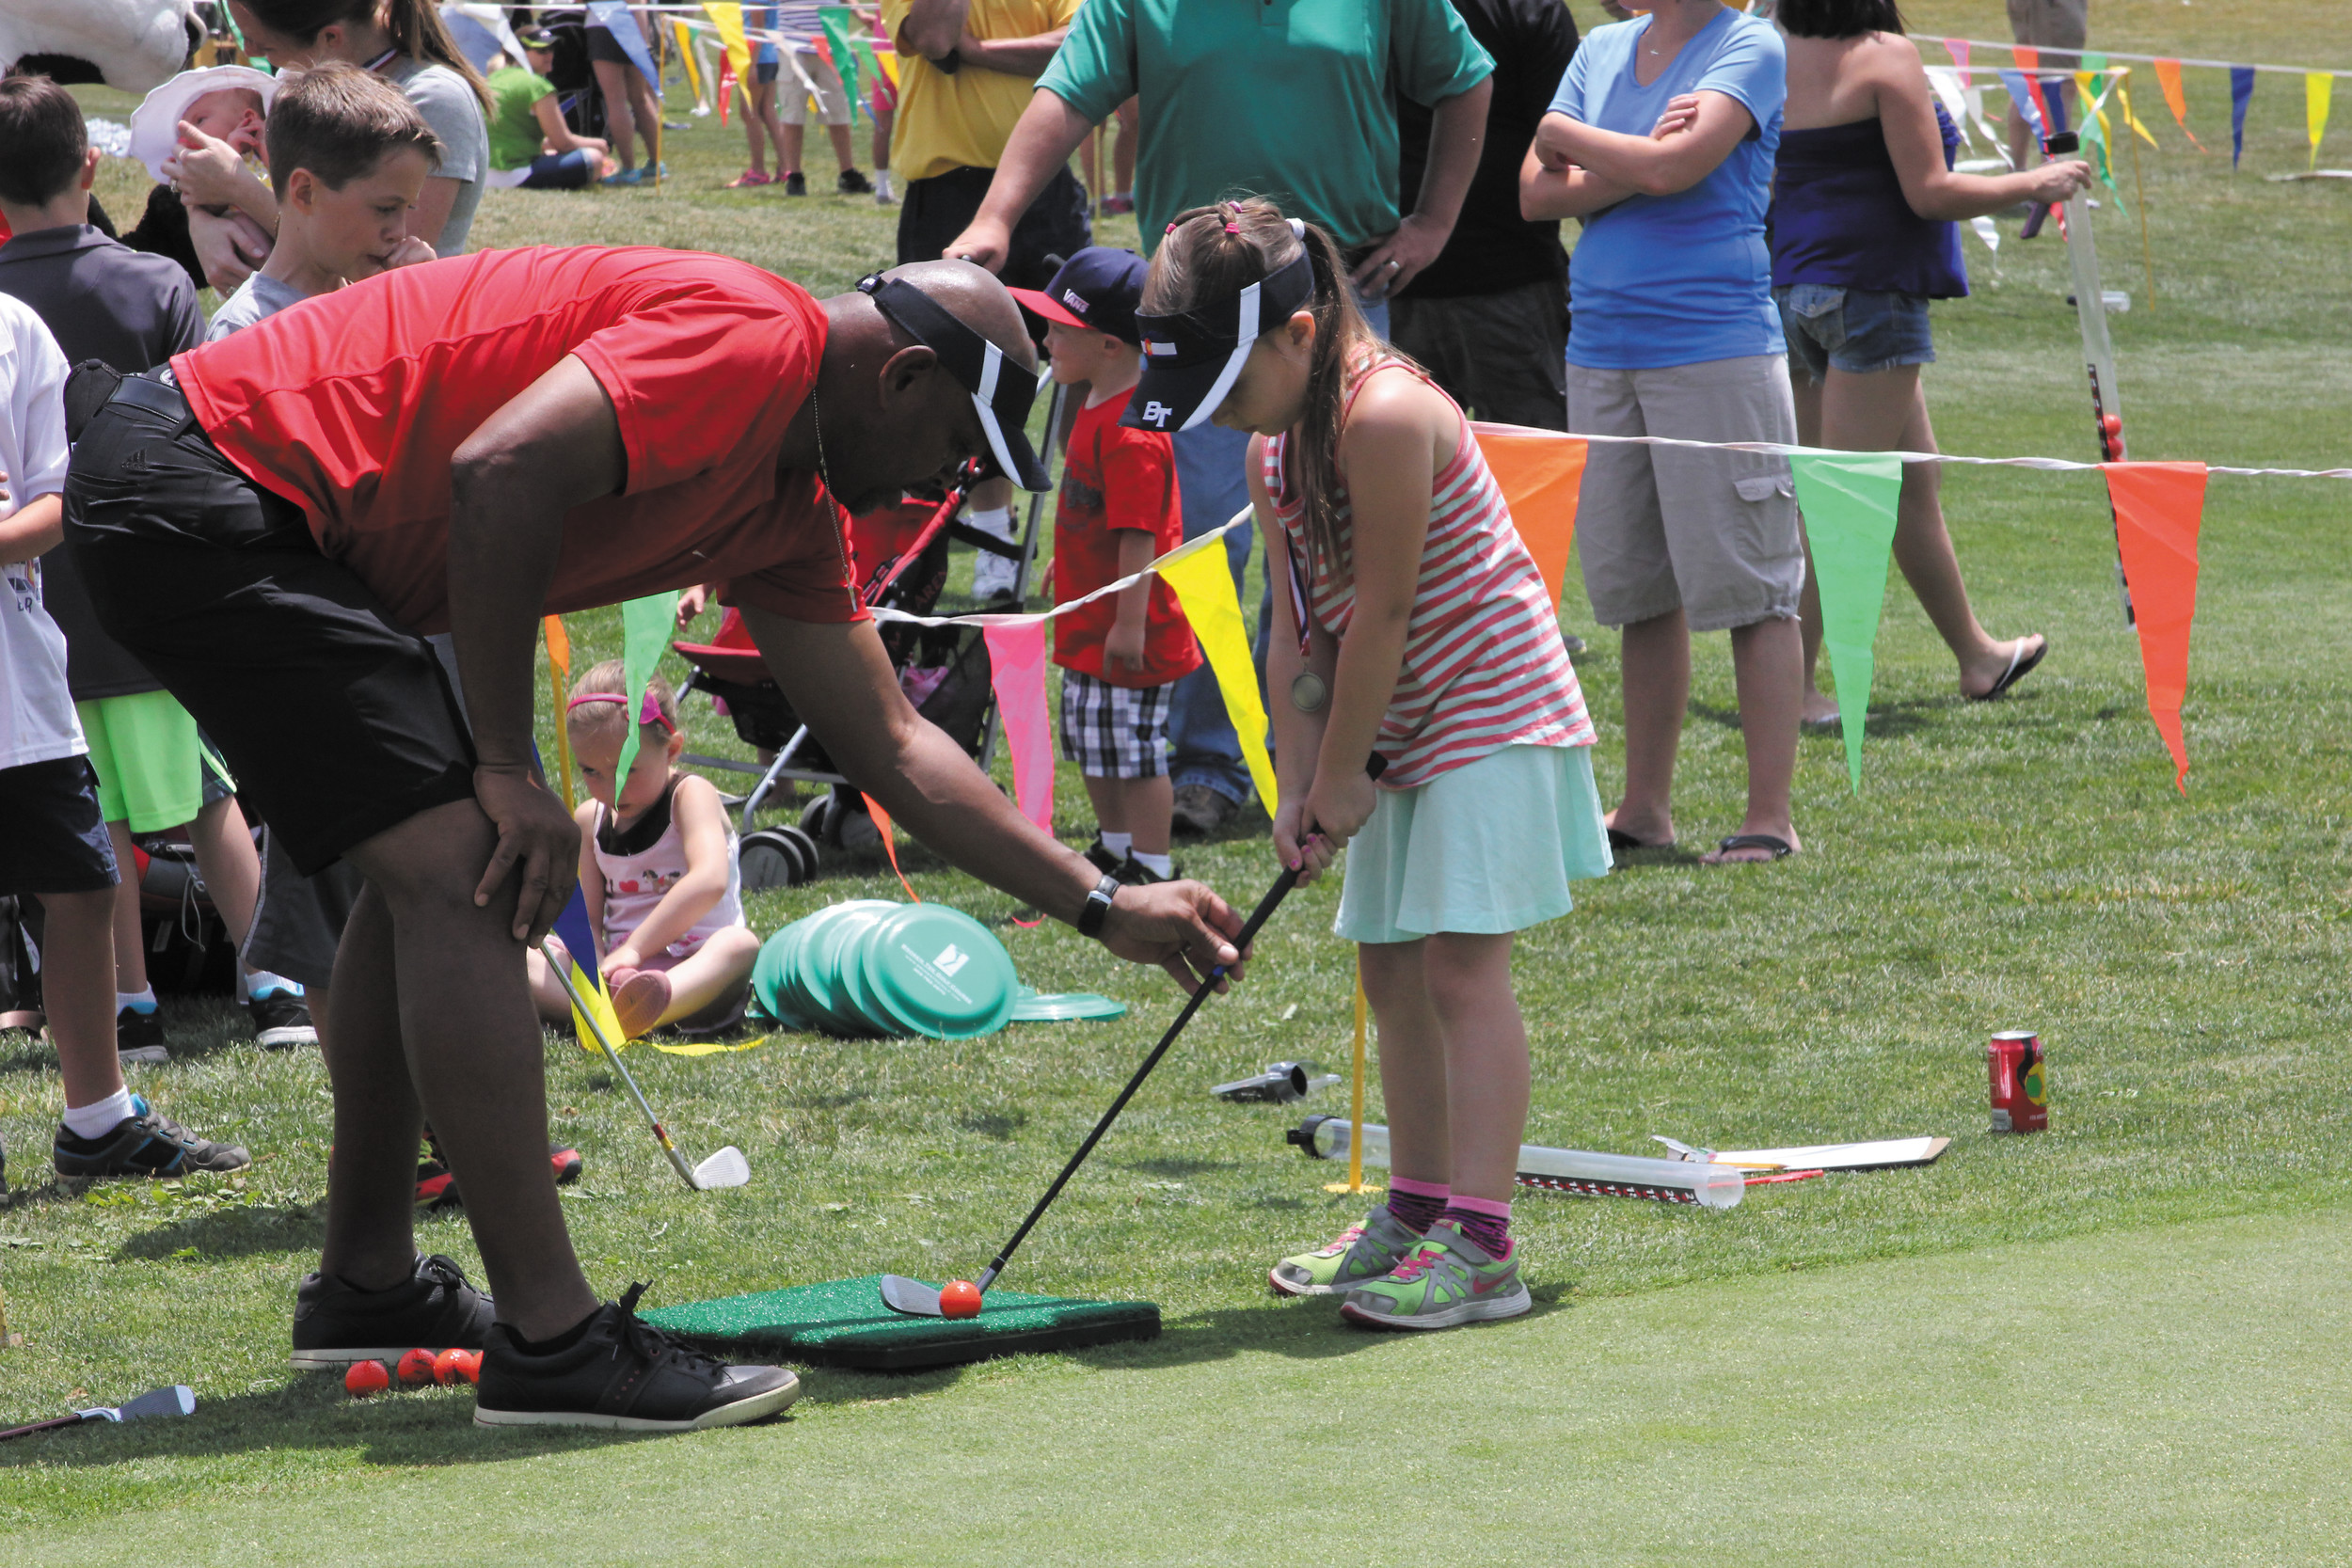 Volunteer David Warden helps Zoe Fortin get the right grip on the club so she can hit the target during the July 2 activities and barbecue wrapping up the Hole-N-One Youth Golf Program that teaches golf fundamentals to 5- to 15-year-olds.  Warden said this is the fifth year he has been a volunteer at the event and it is his way to give back to the community.